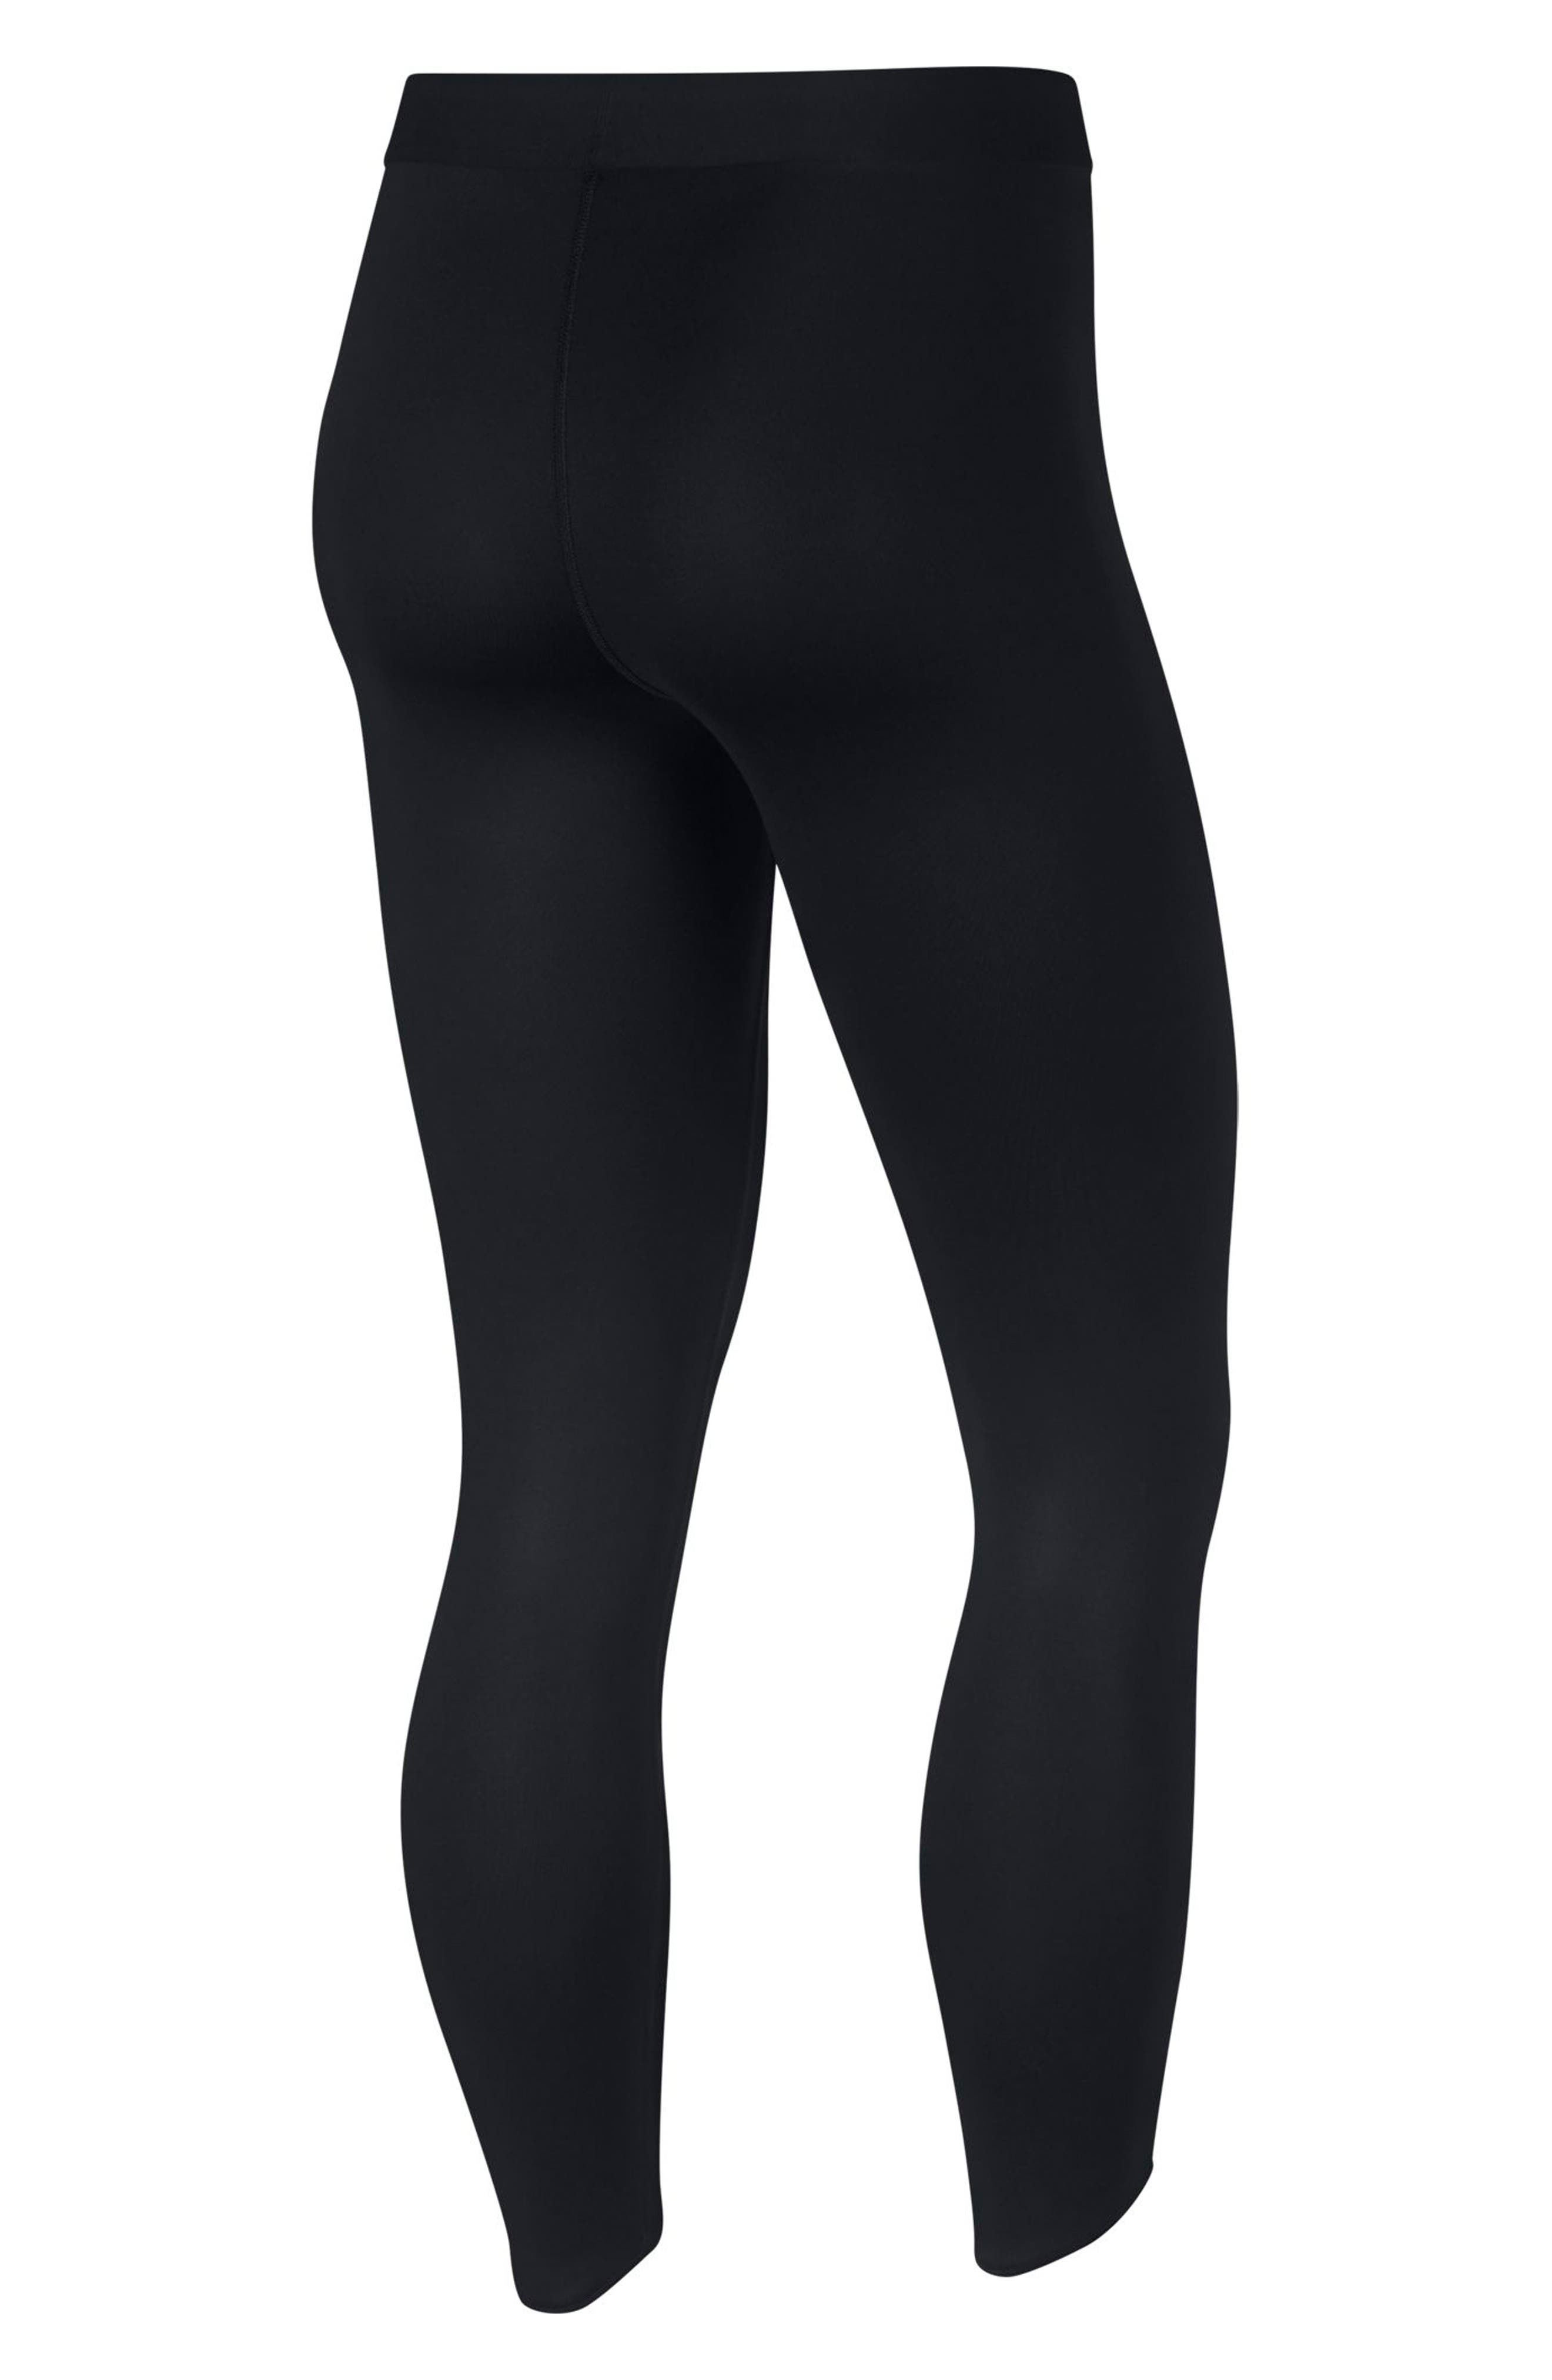 Pro Embossed Logo 7/8 Tights,                             Alternate thumbnail 2, color,                             010